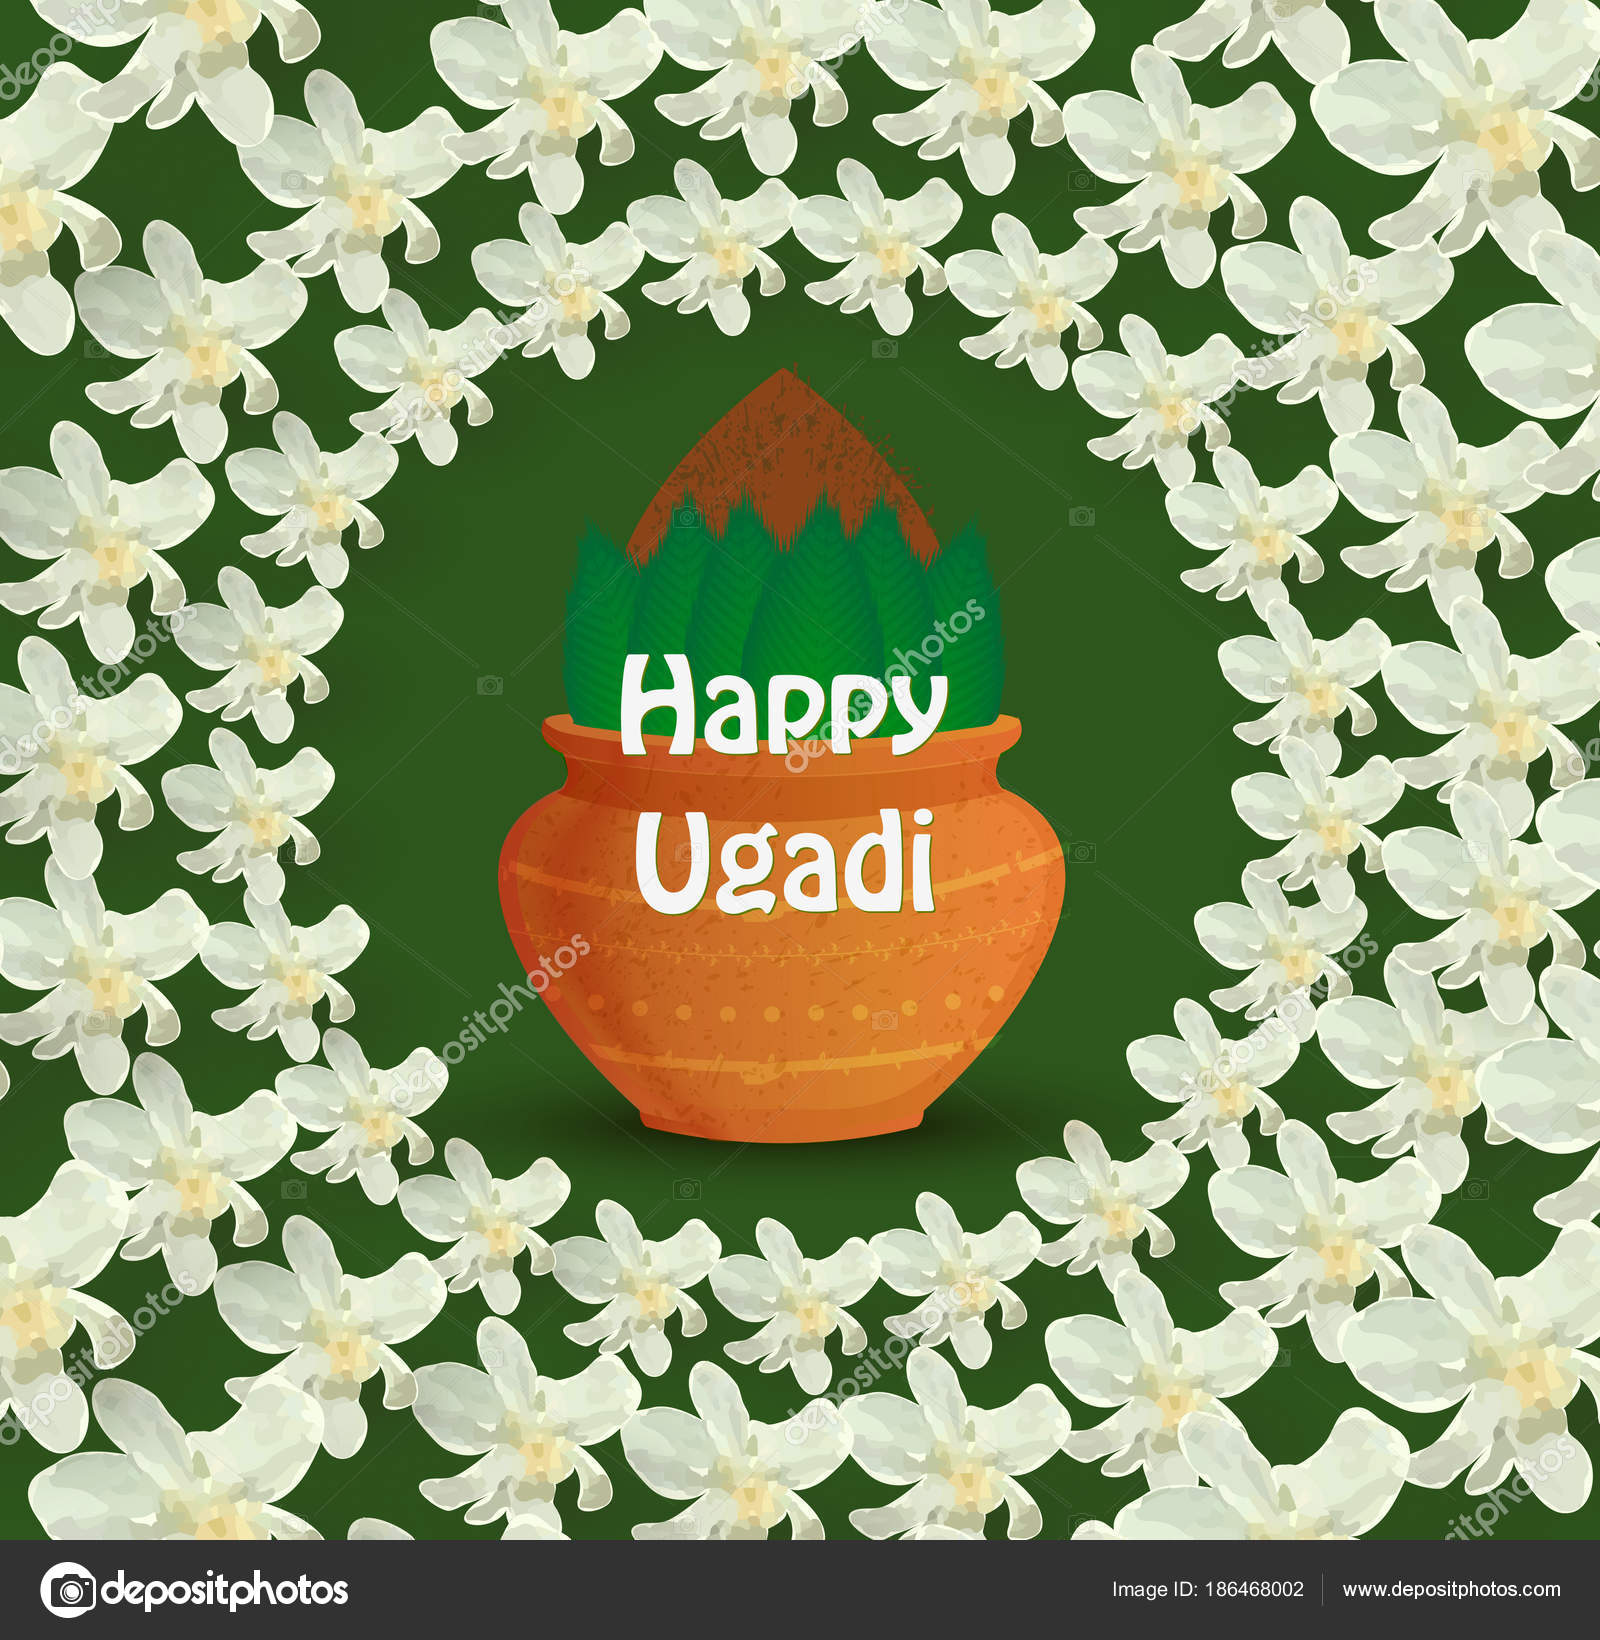 Neem Flower For Ugadi In Usa Flowers Healthy